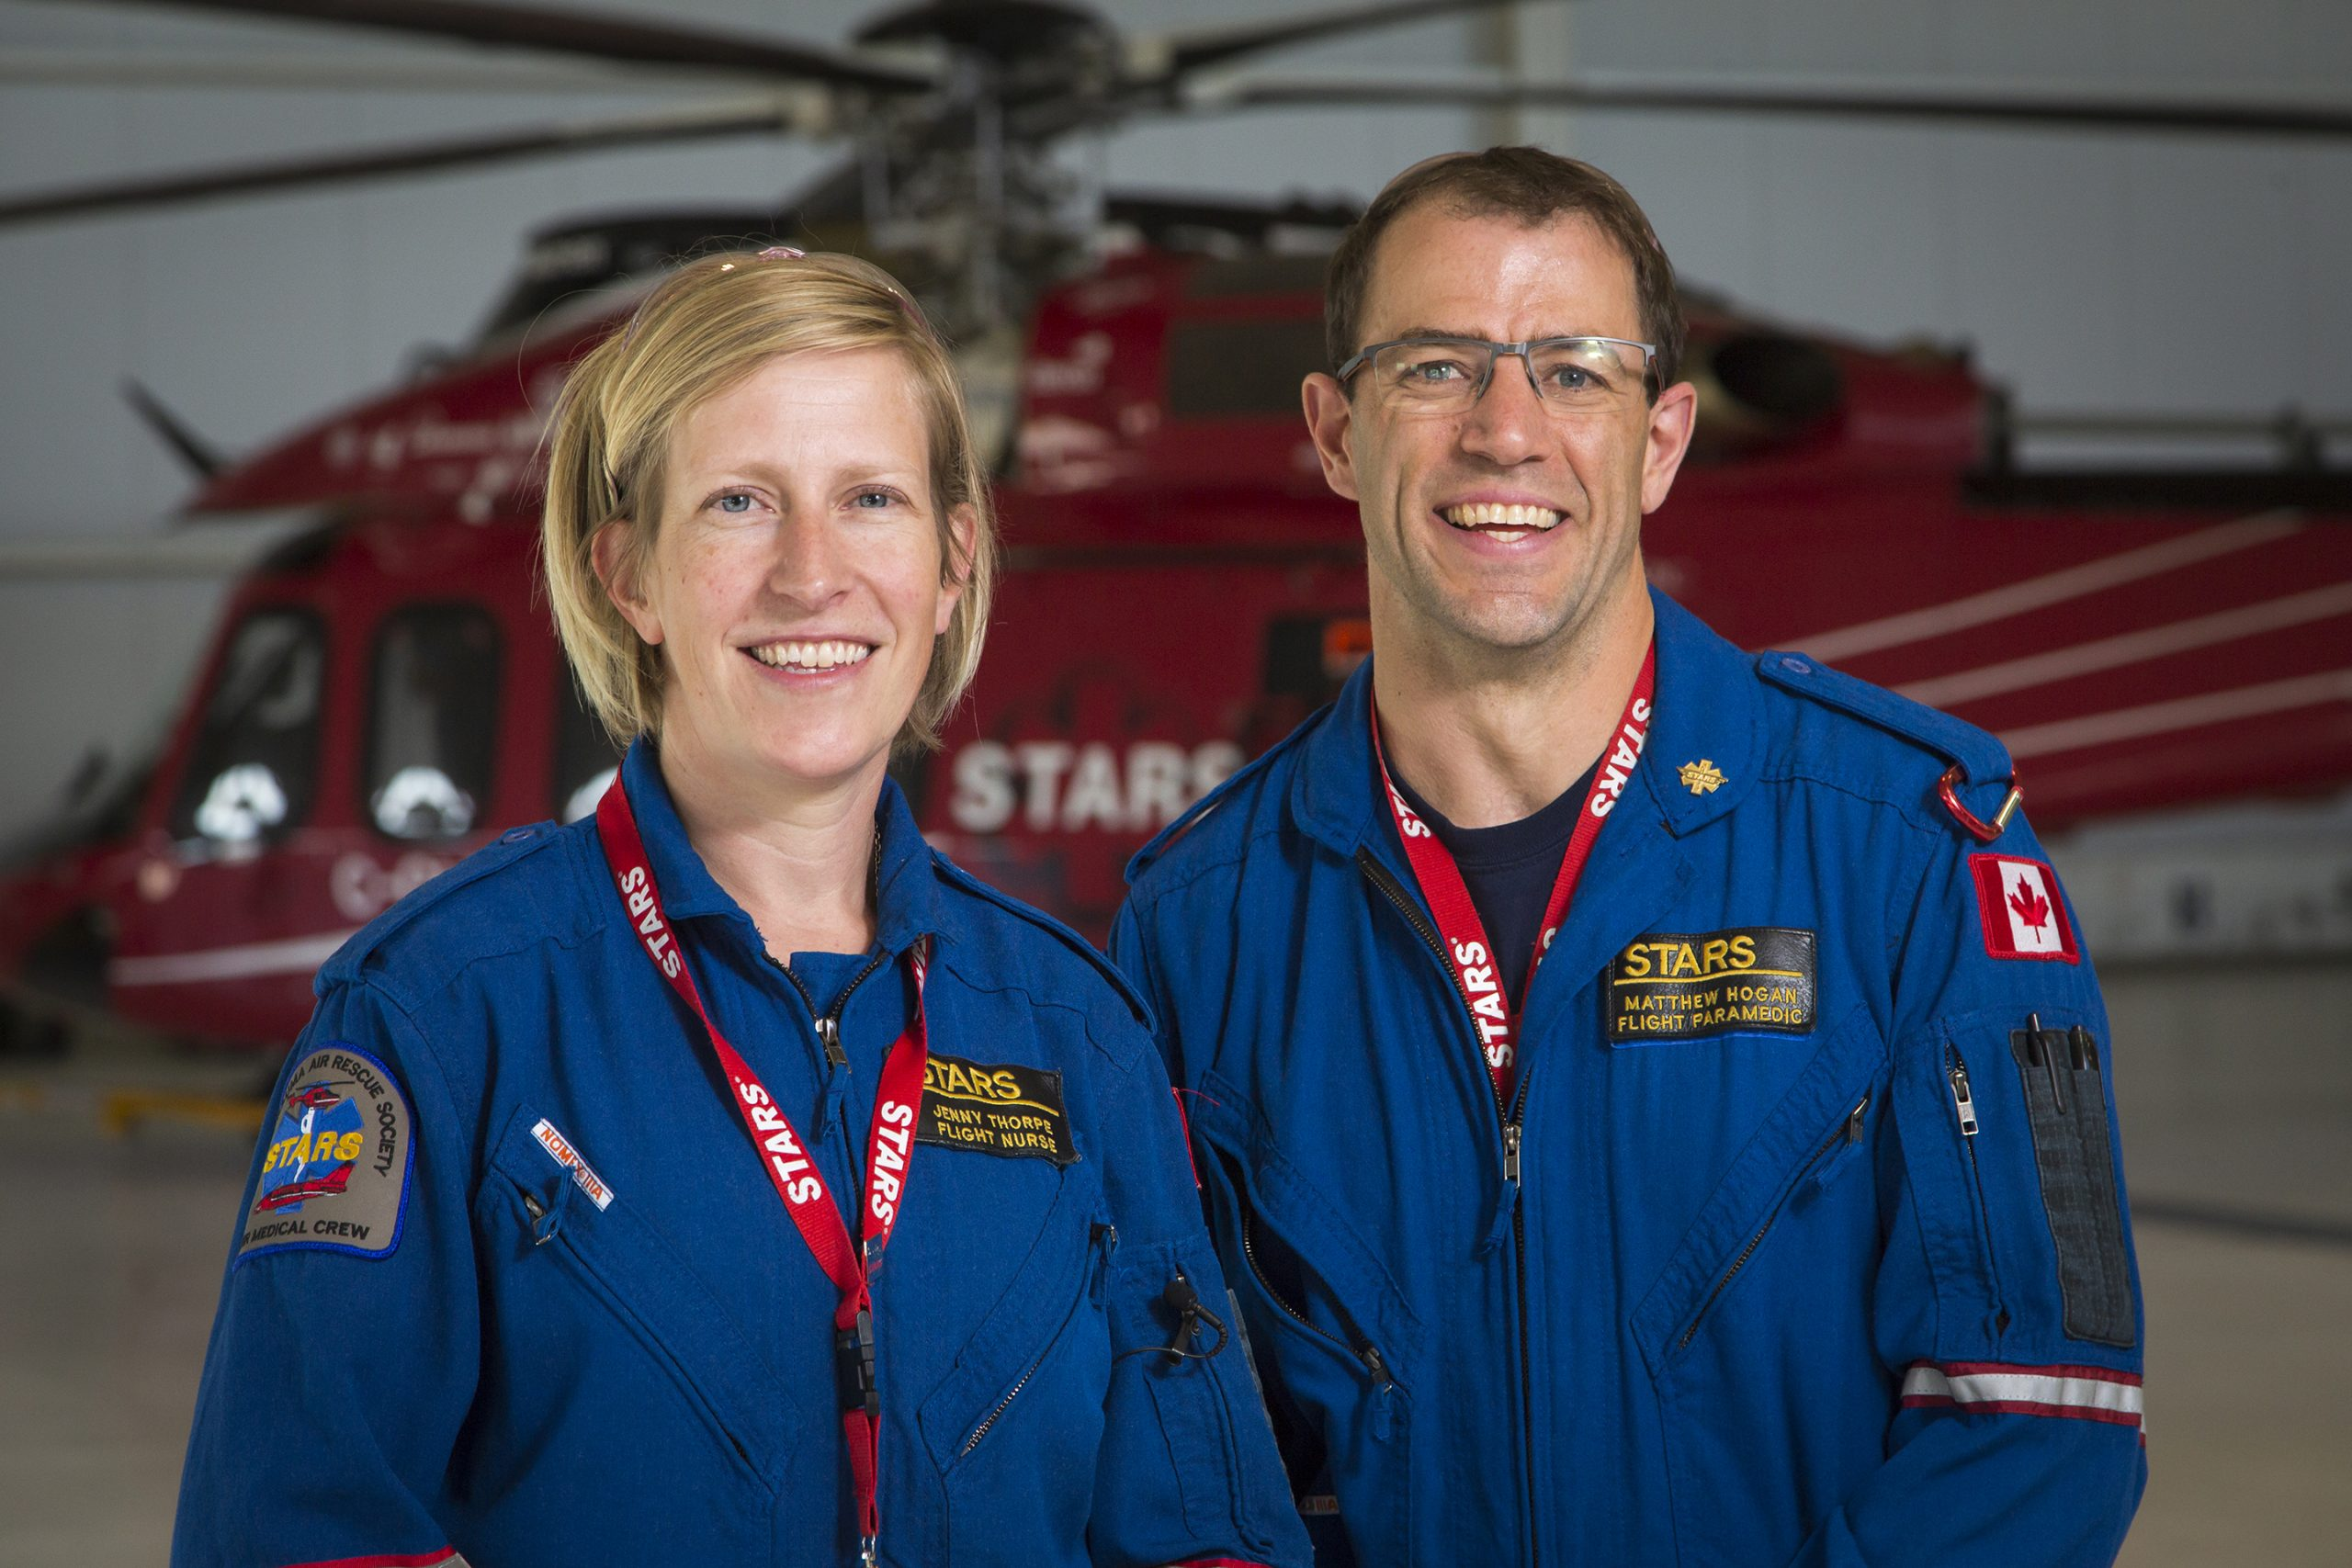 Saskatoon STARS Medical Crew to Compete in International Competition